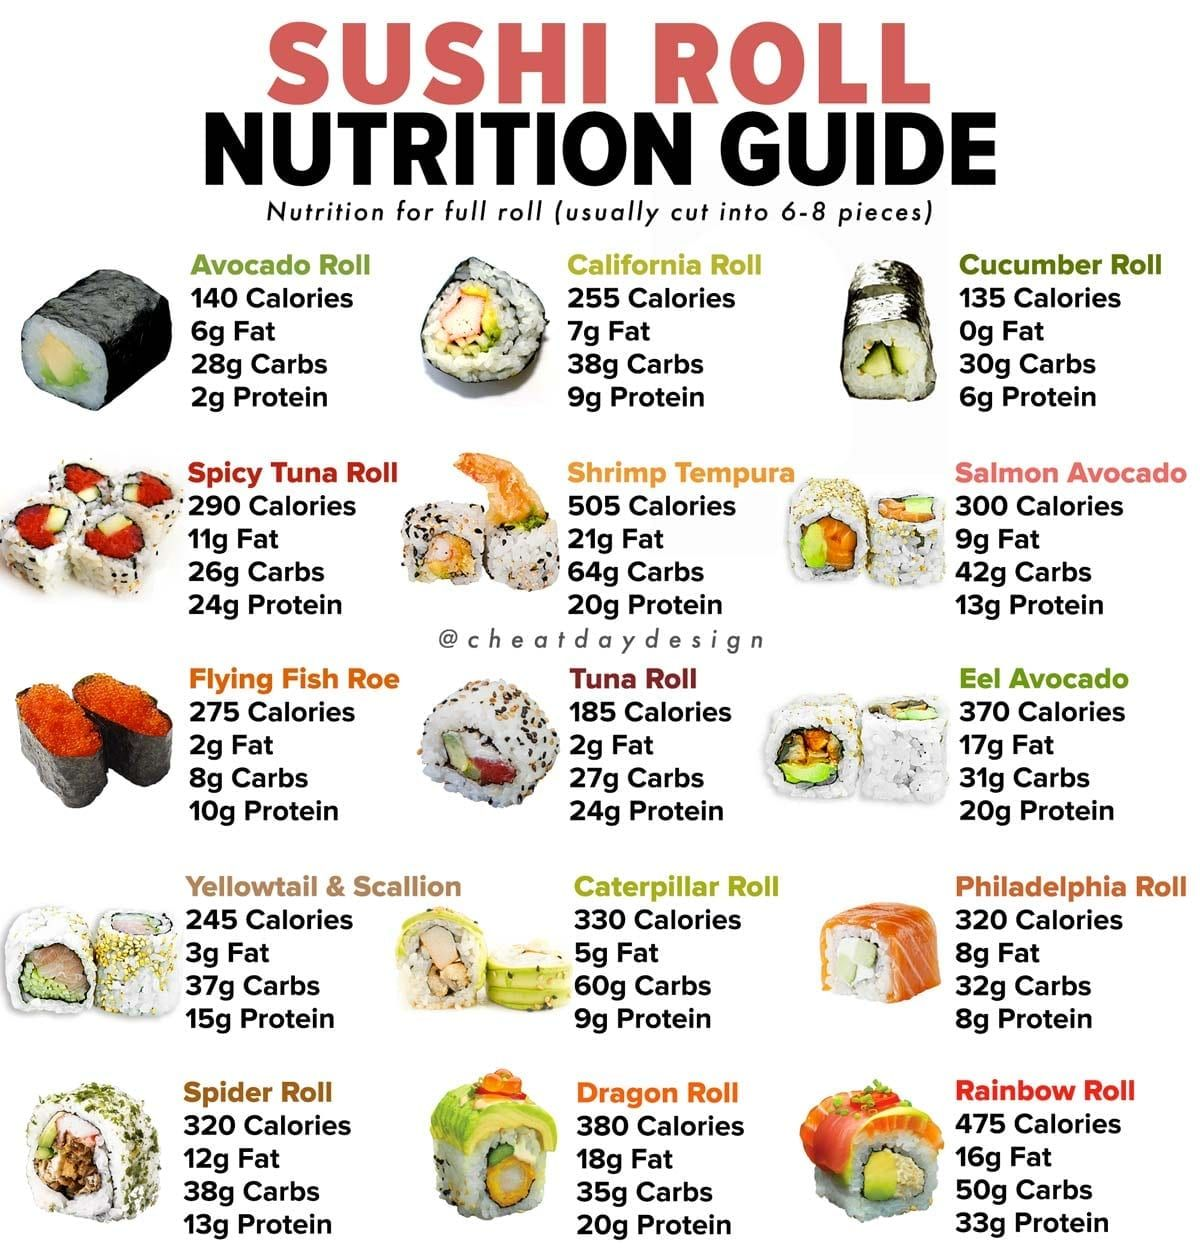 Sushi Roll Nutrition Guide In 2021 Sushi Rolls Healthy Sushi Food Calorie Chart